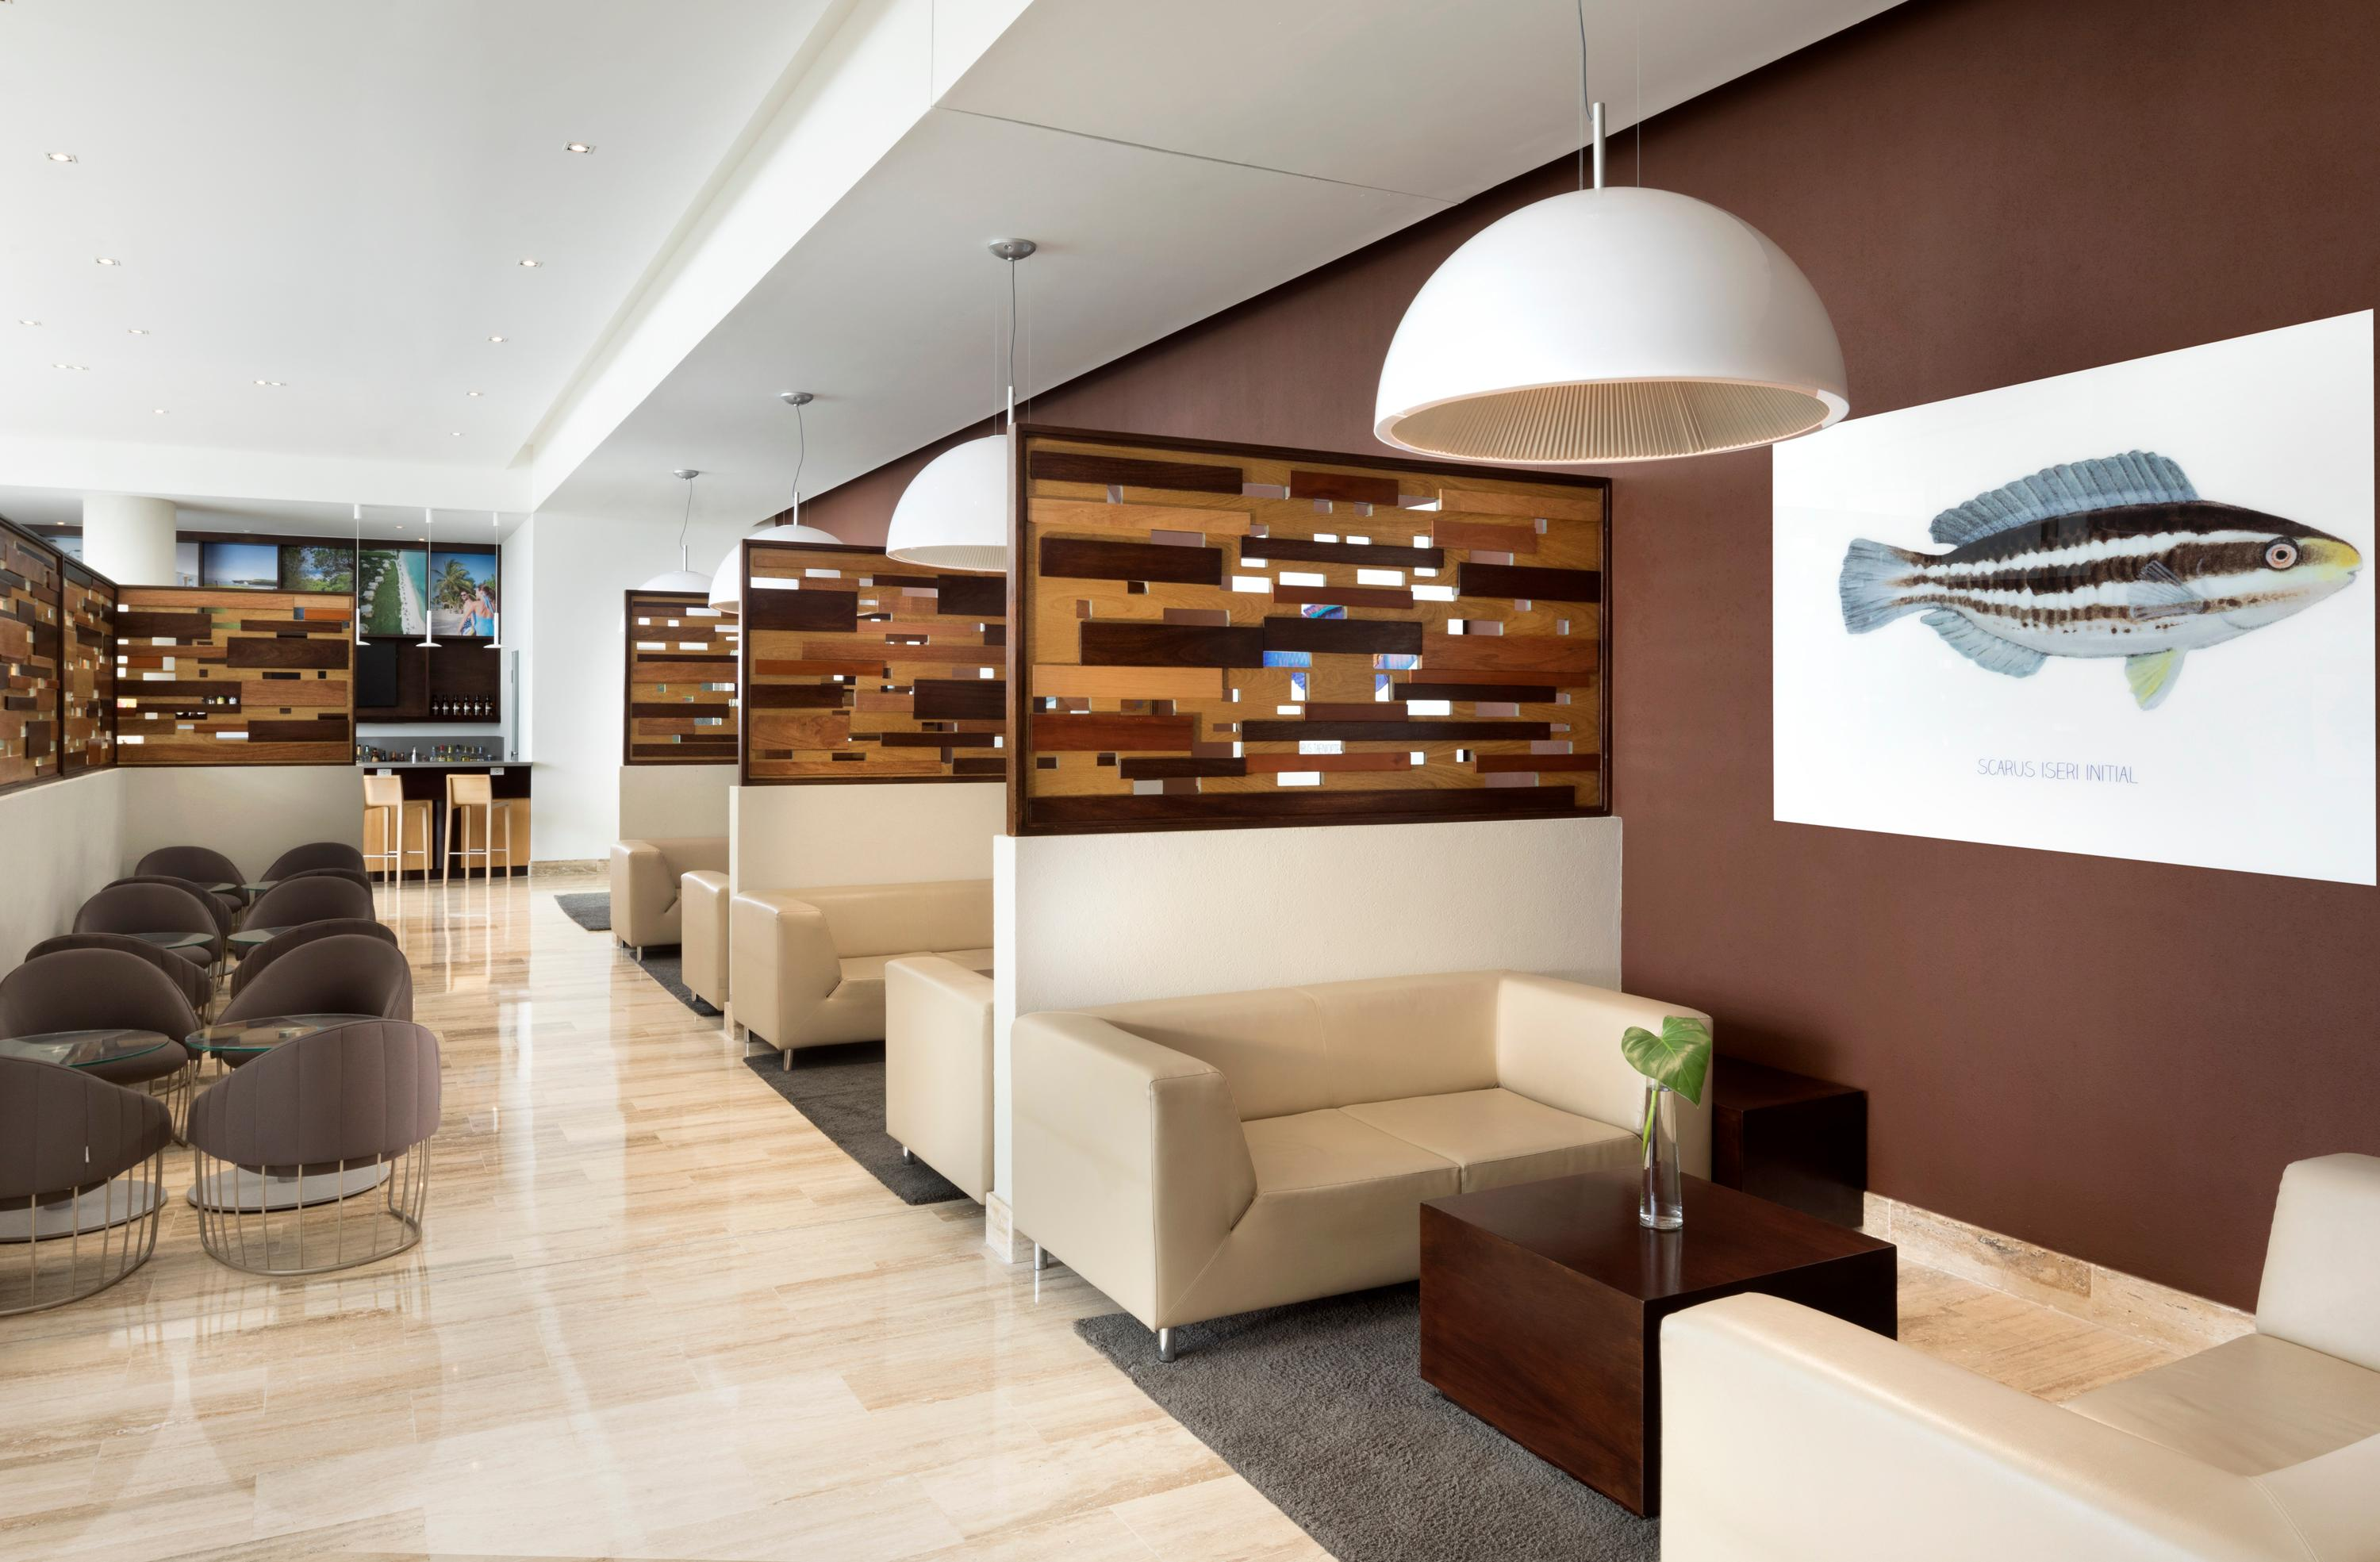 VIP Lounge at Punta Cana International Airport